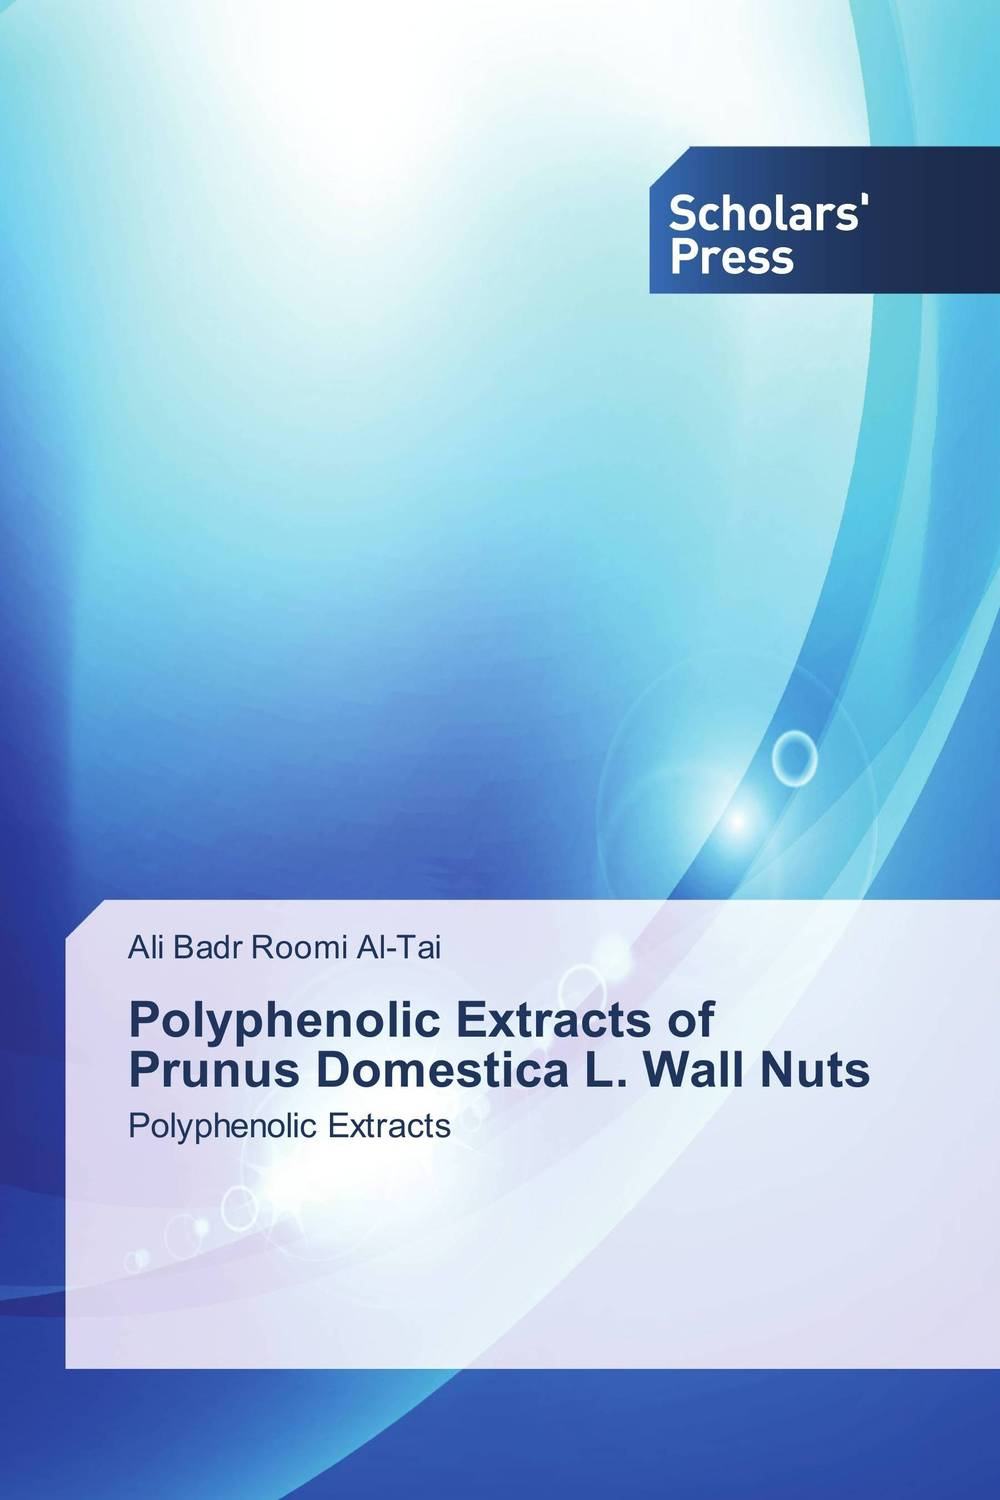 Polyphenolic Extracts of Prunus Domestica L. Wall Nuts in vitro activities of asparagus racemosus root extracts